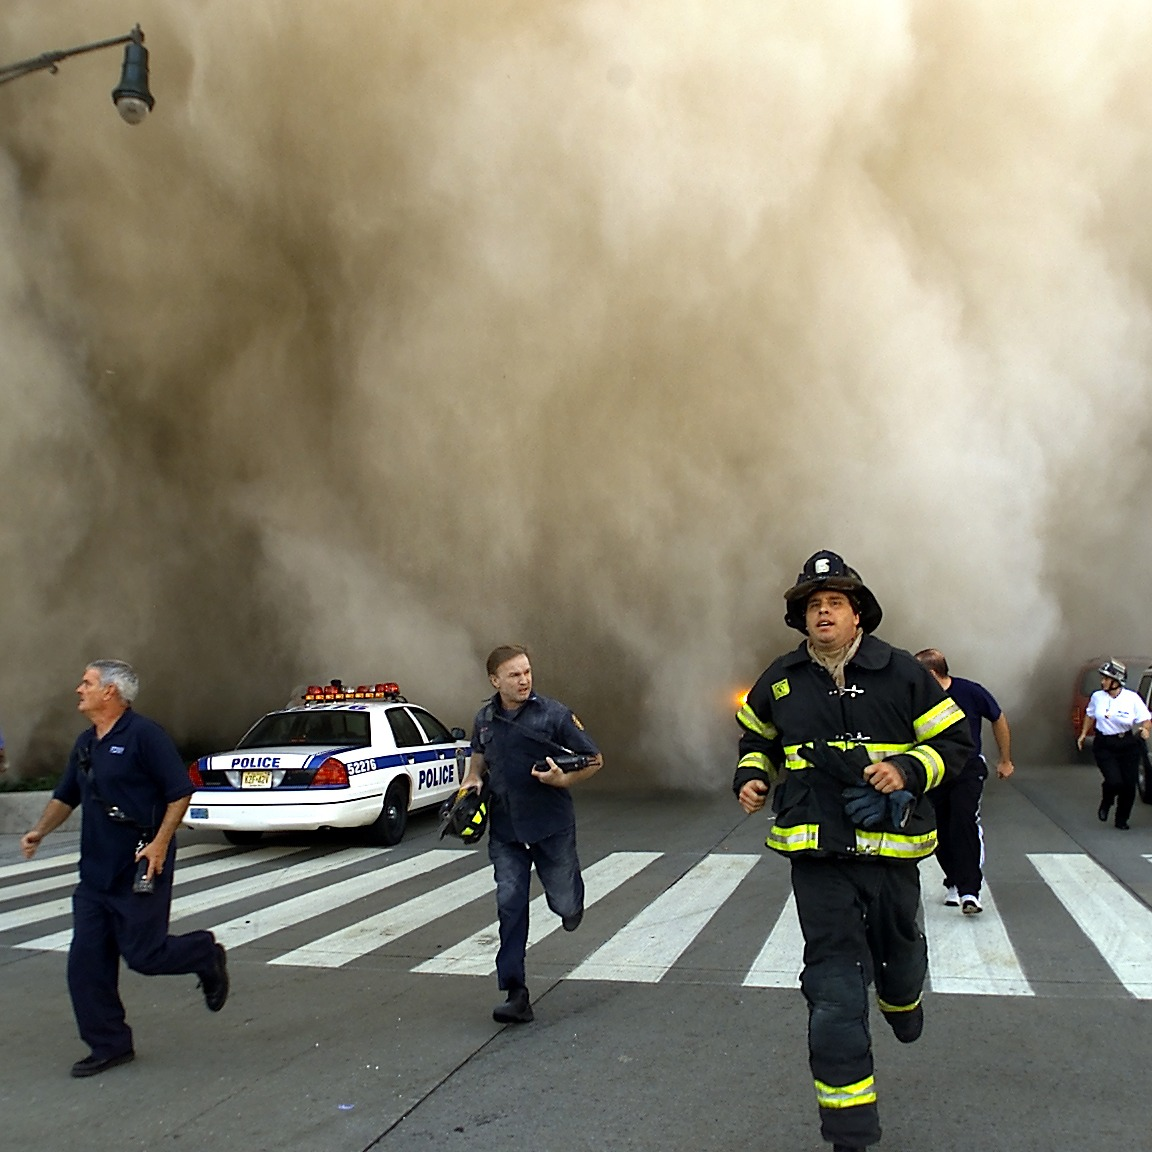 The Atlantic On 9/11, Luck Meant Everything Link Thumbnail | Linktree